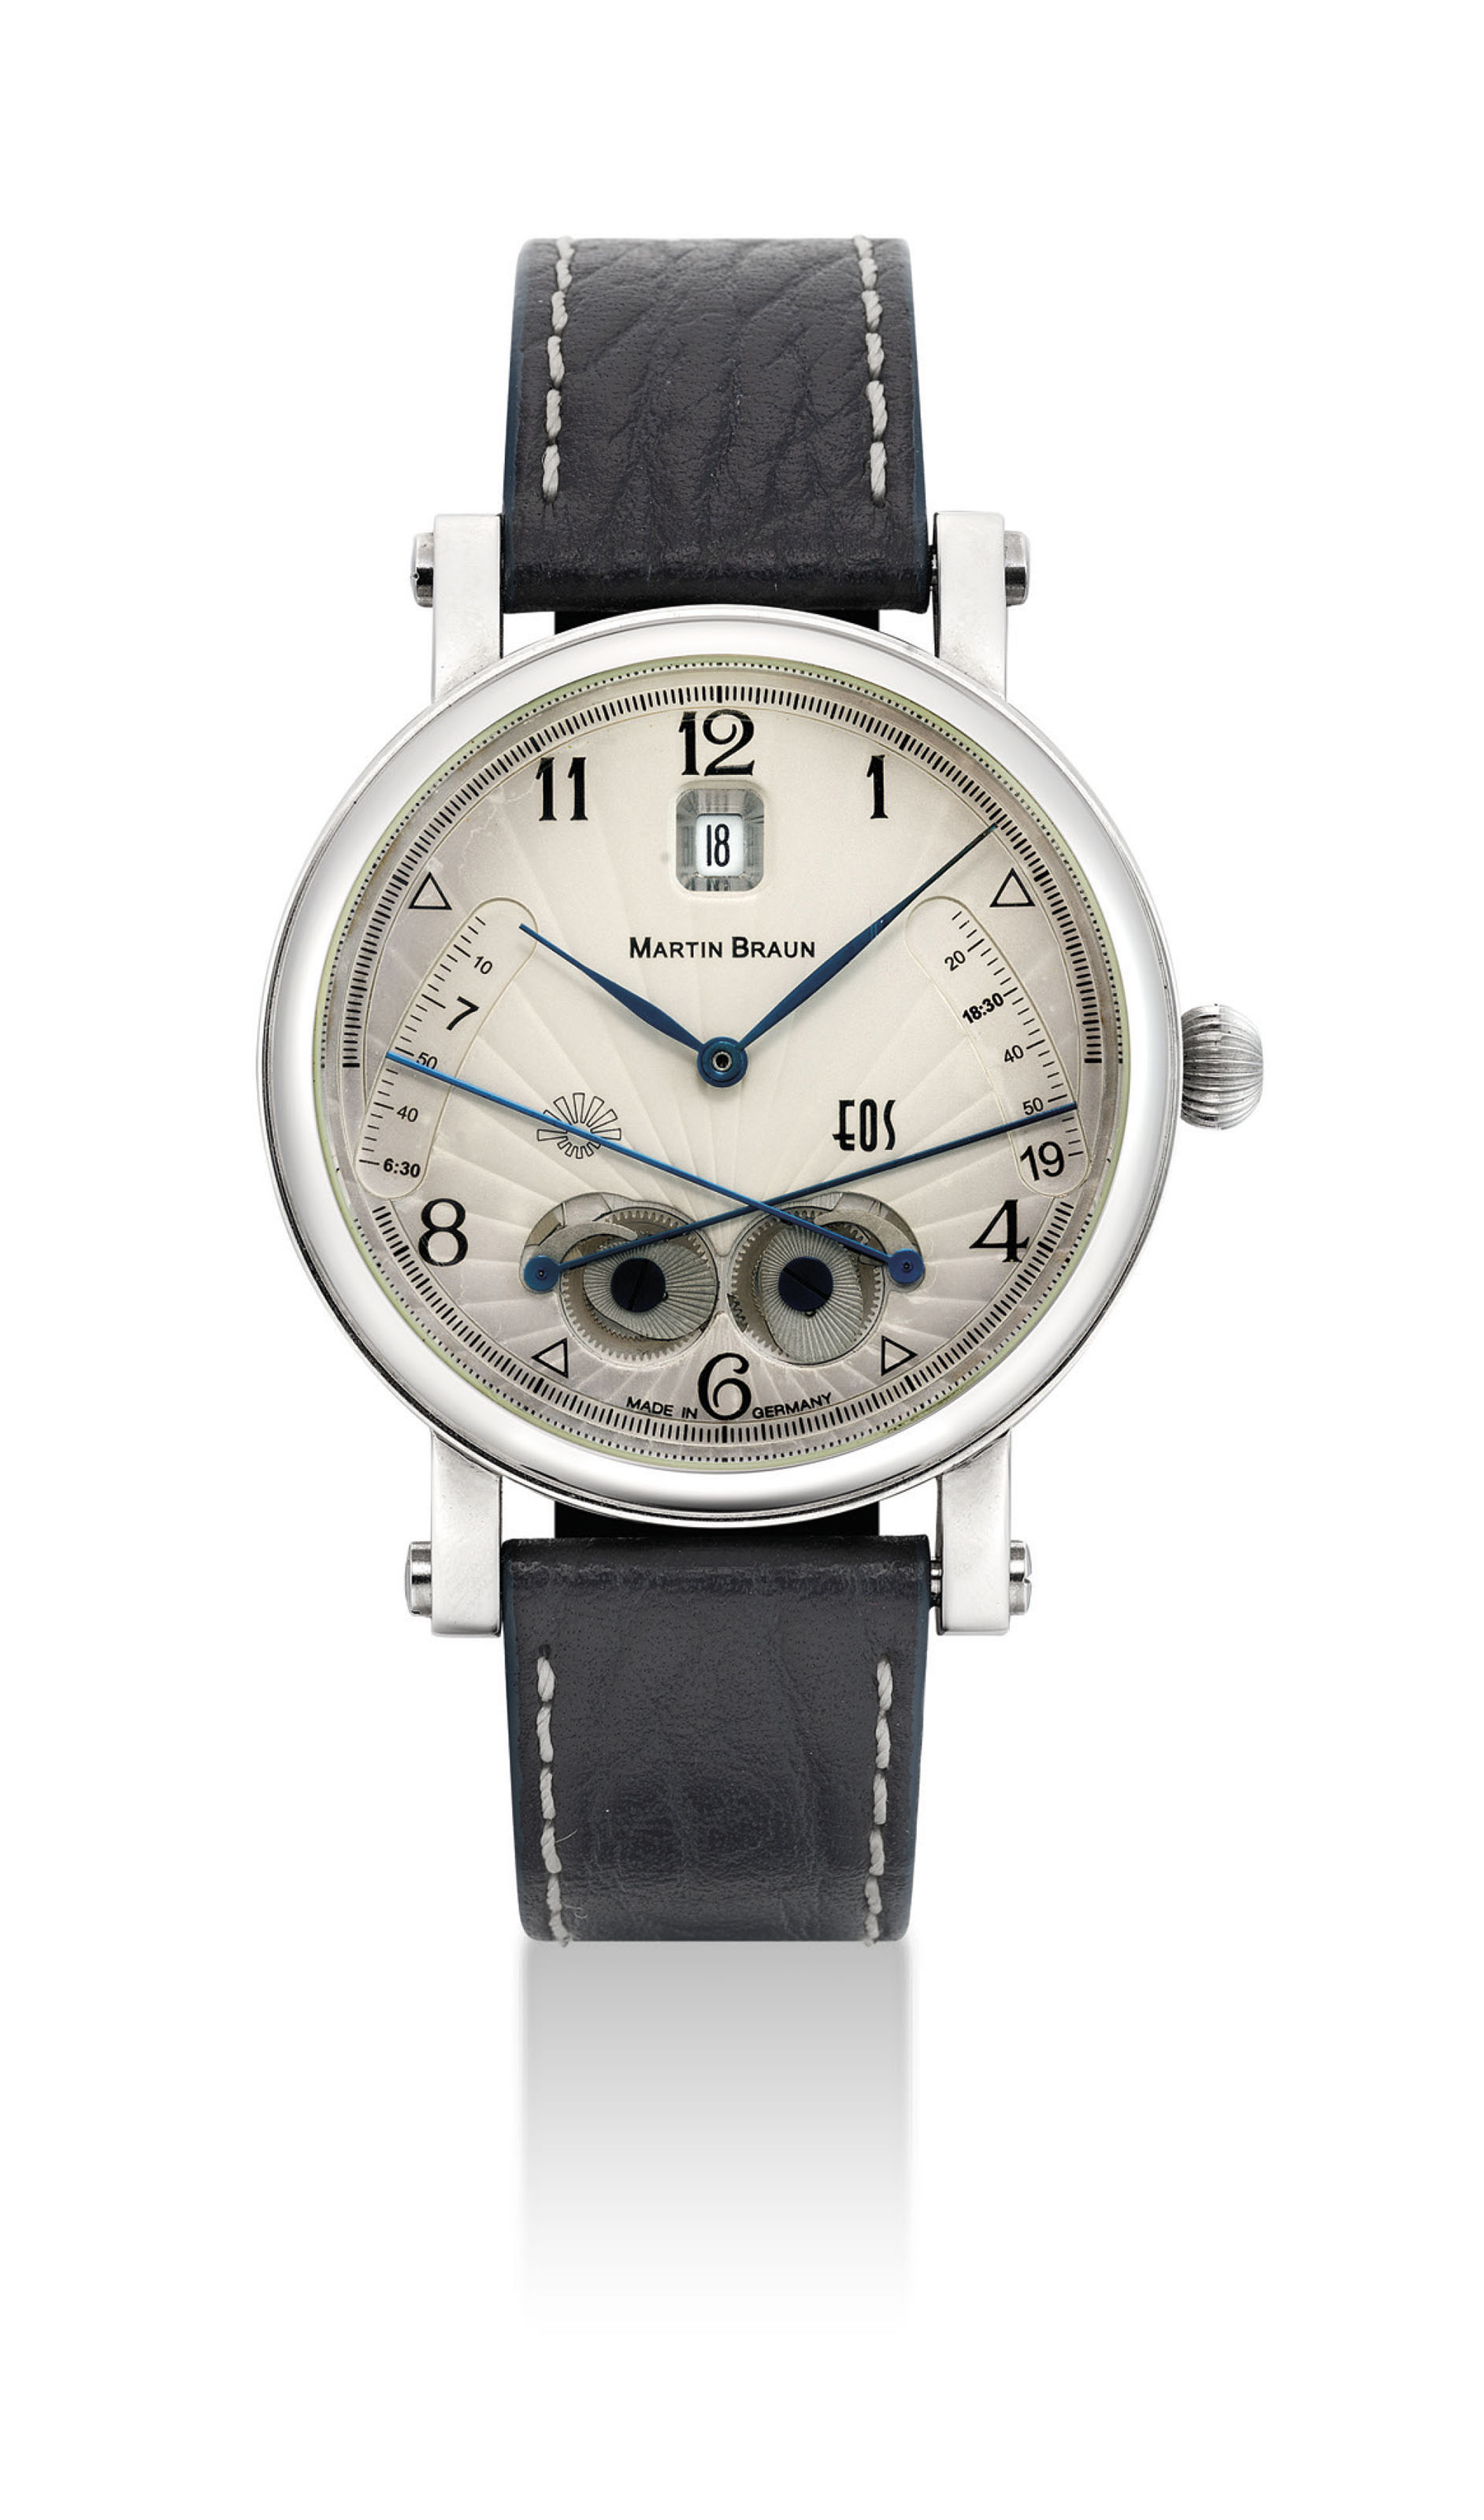 MARTIN BRAUN. A STAINLESS STEEL AUTOMATIC WRISTWATCH WITH DATE AND SUNRISE AND SUNSET INDICATORS